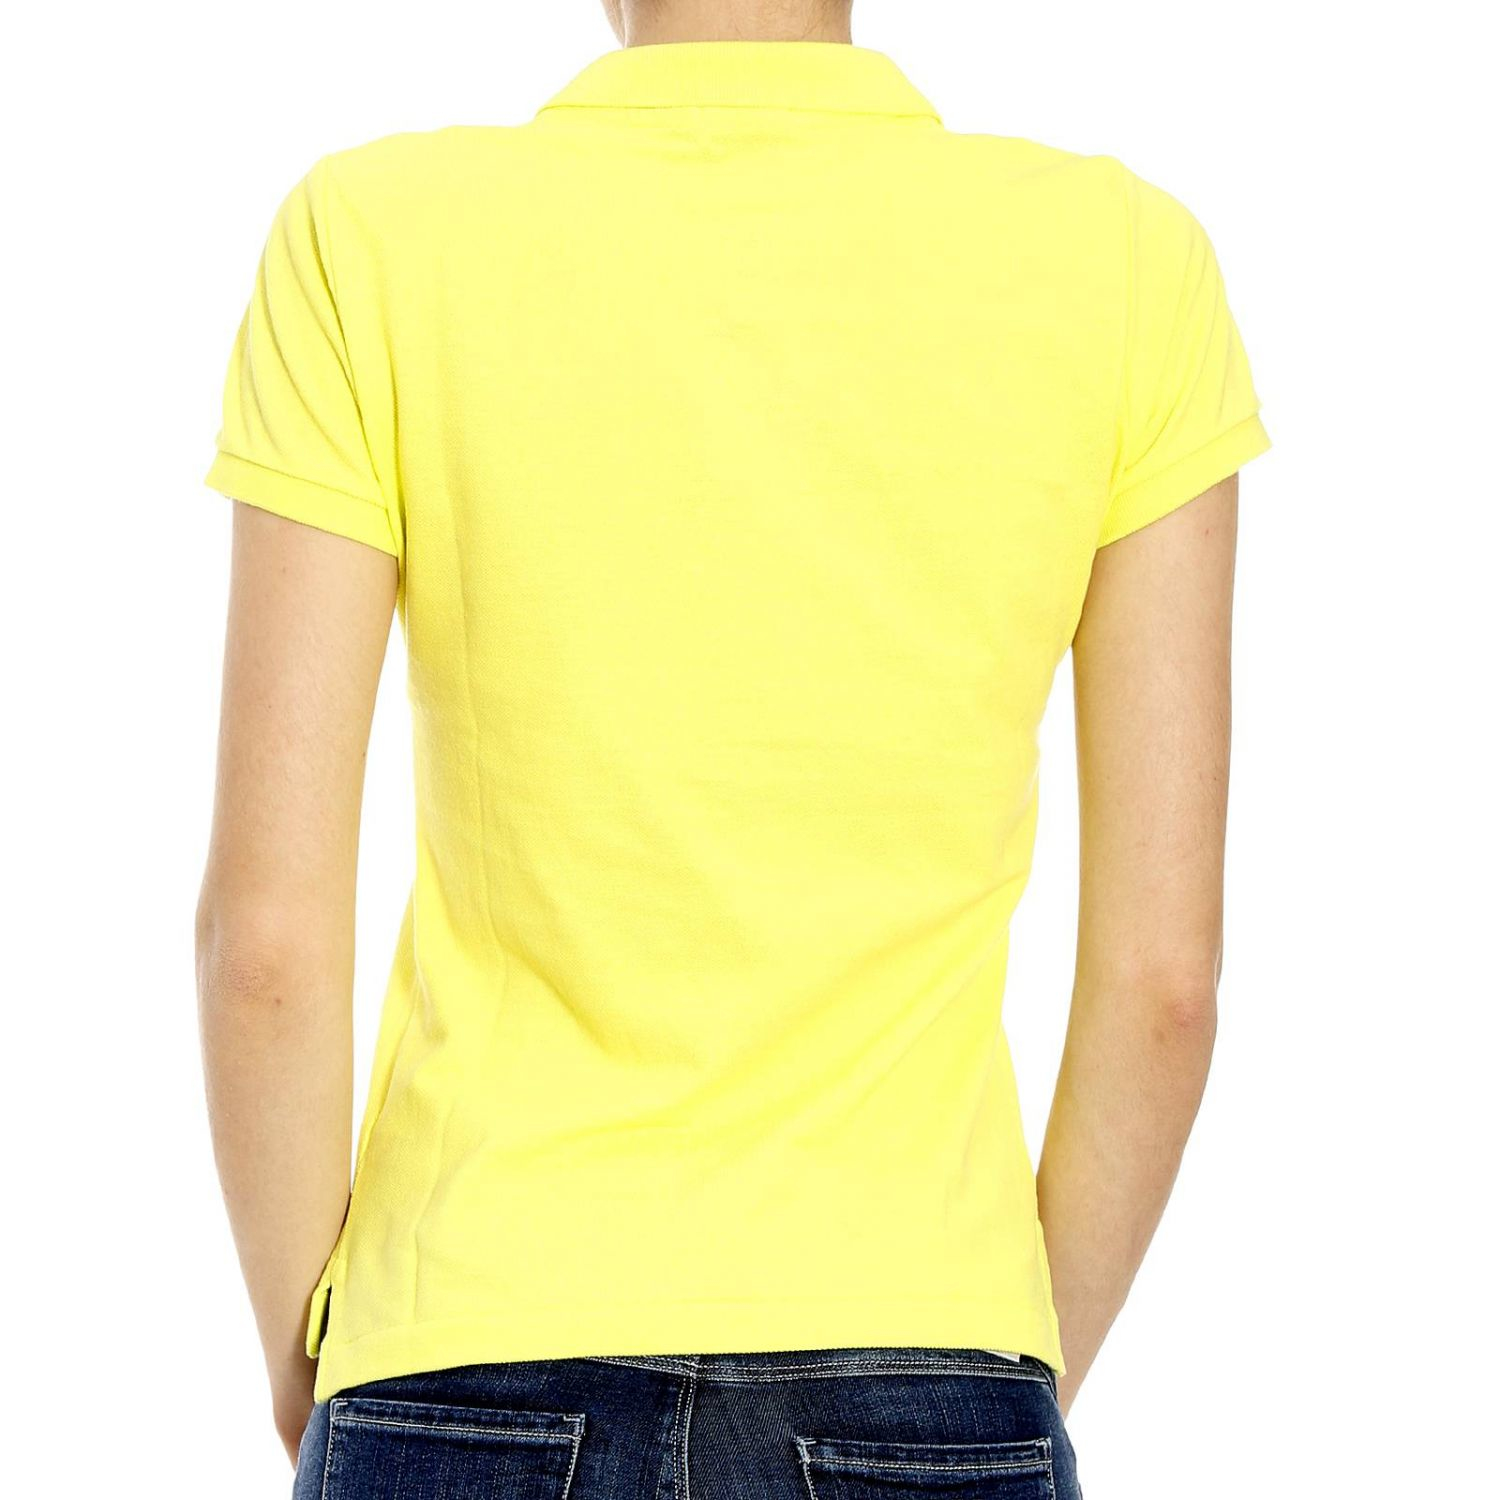 polo ralph lauren t shirt in yellow lyst. Black Bedroom Furniture Sets. Home Design Ideas